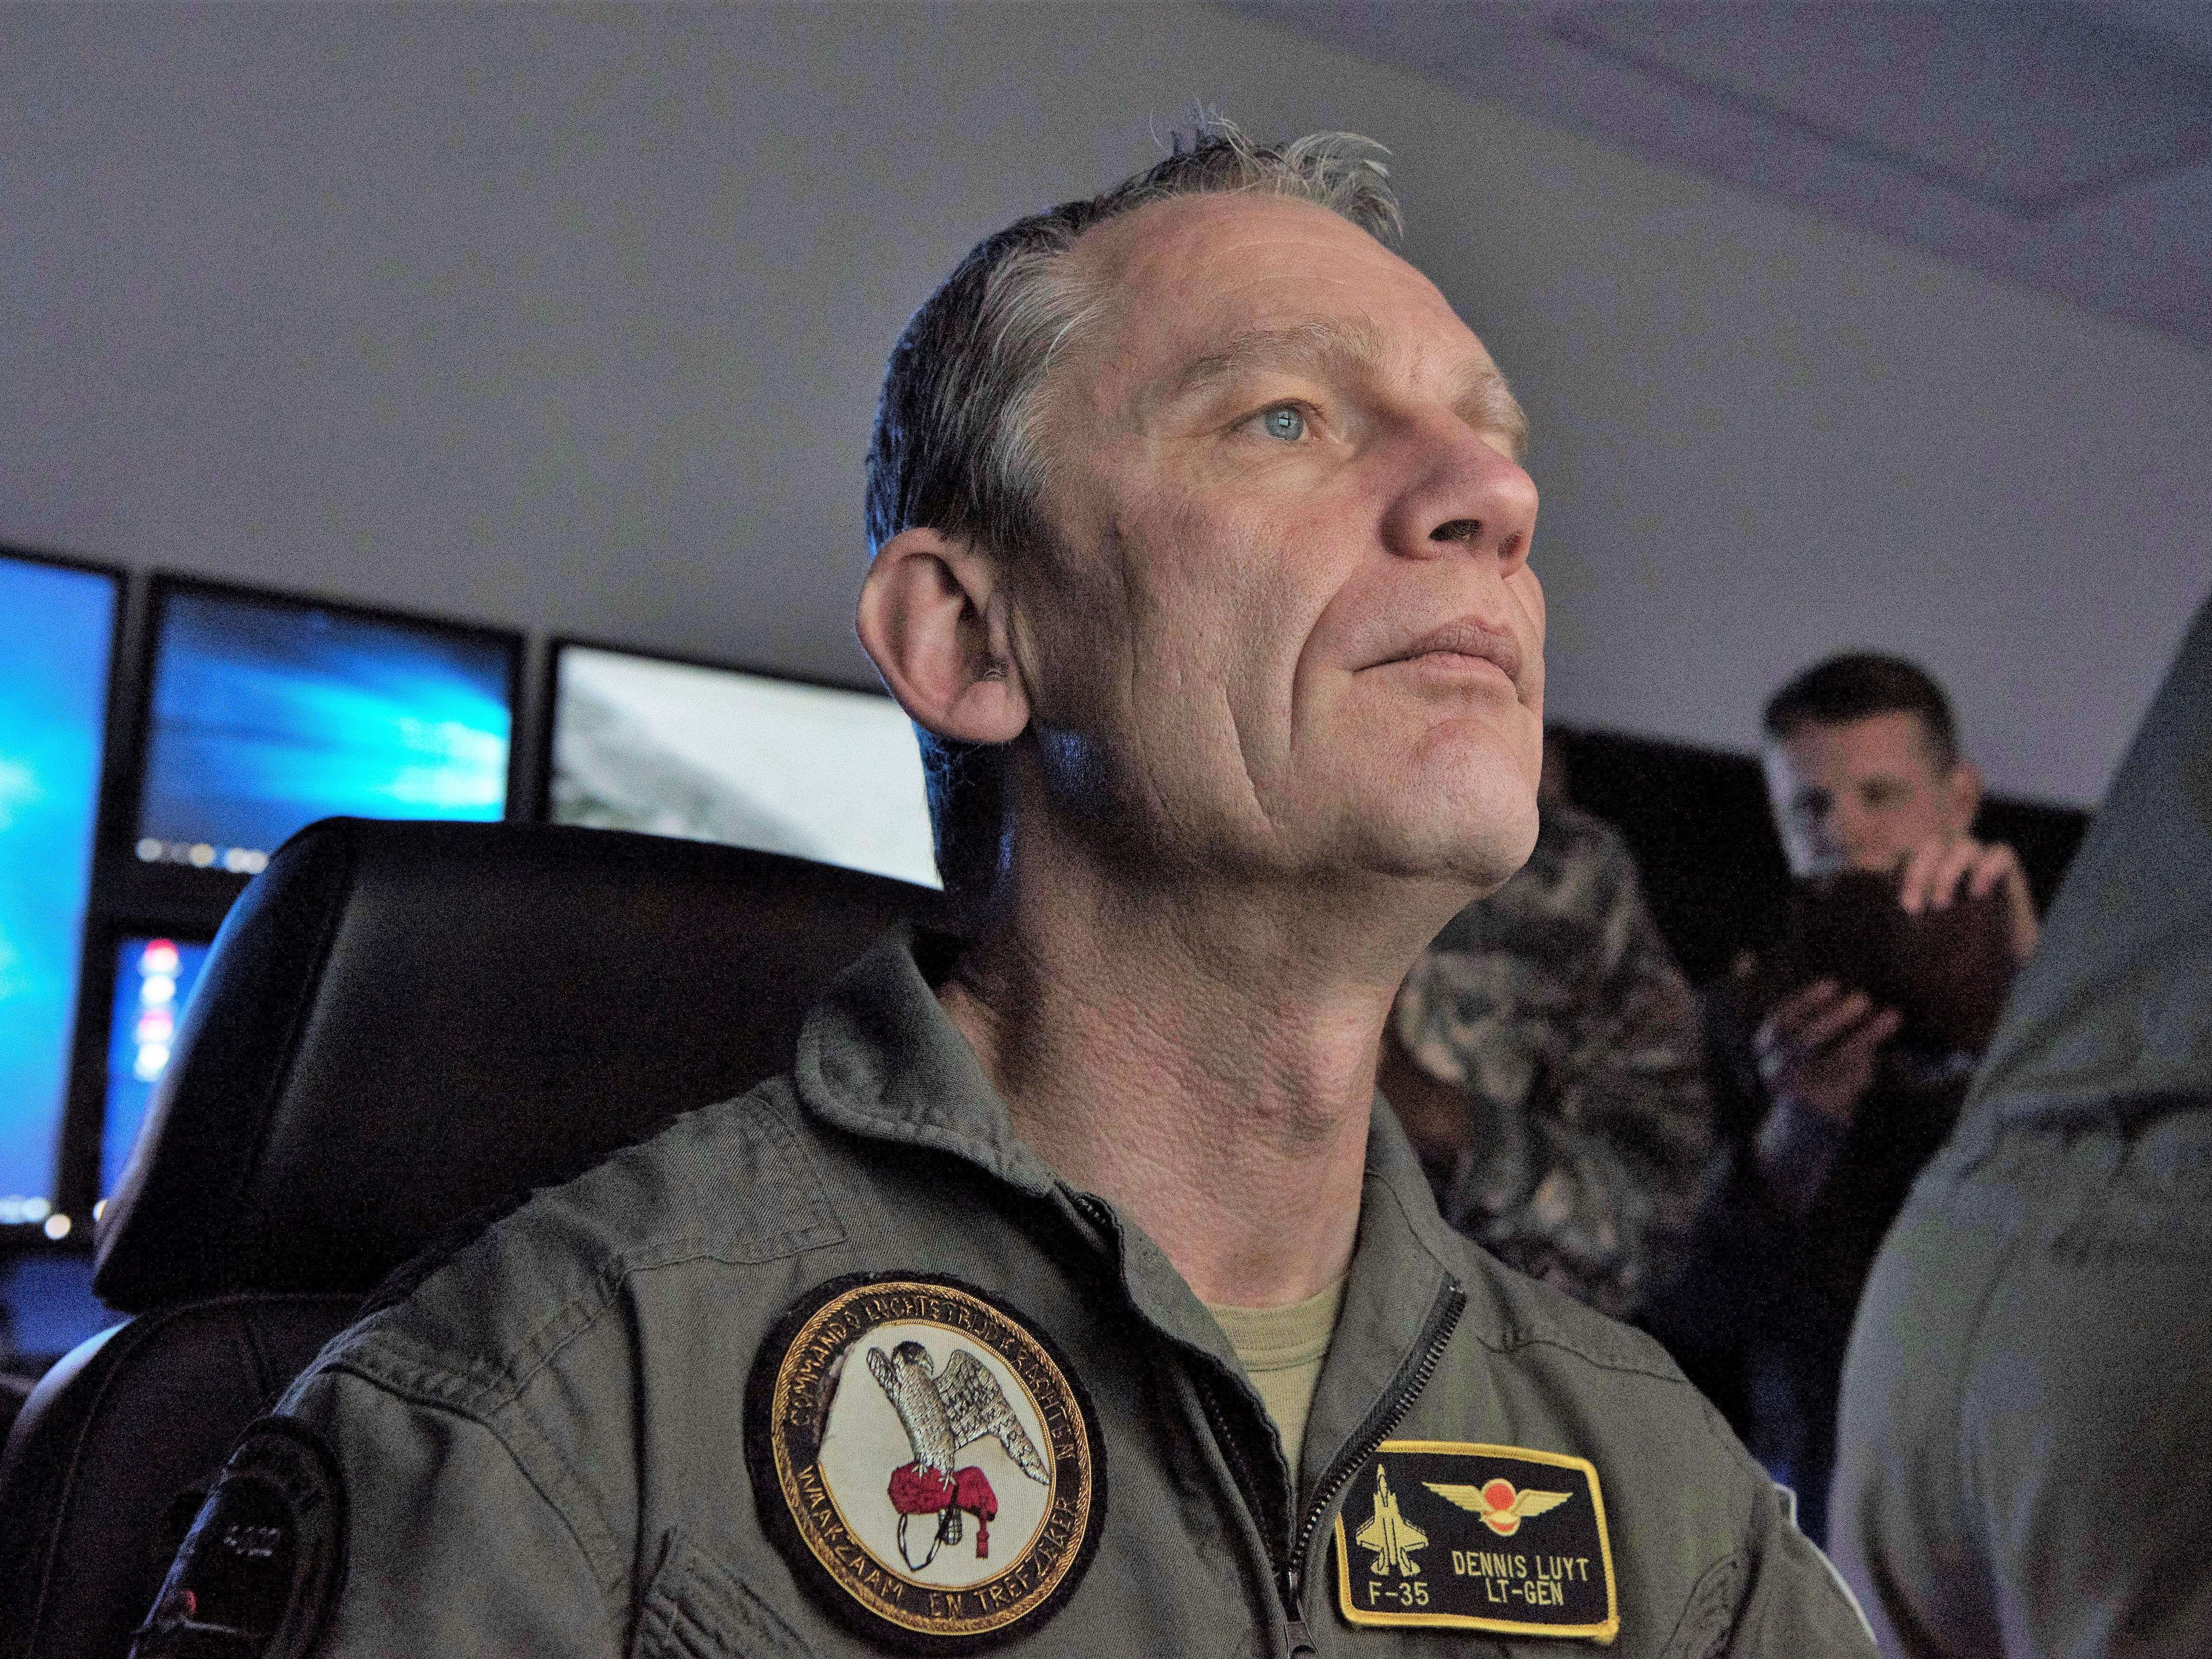 Lt. Gen. Dennis Luyt, Royal Netherlands Air Force commander, smulates flying an MQ-9 Reaper, Feb. 1, 2019, in the 16th Attack Squadron on Holloman Air Force Base, N.M. Netherlands defense and military officials visited Holloman to tour the facilities where their MQ-9 Reaper pilots and sensor operators are being trained.